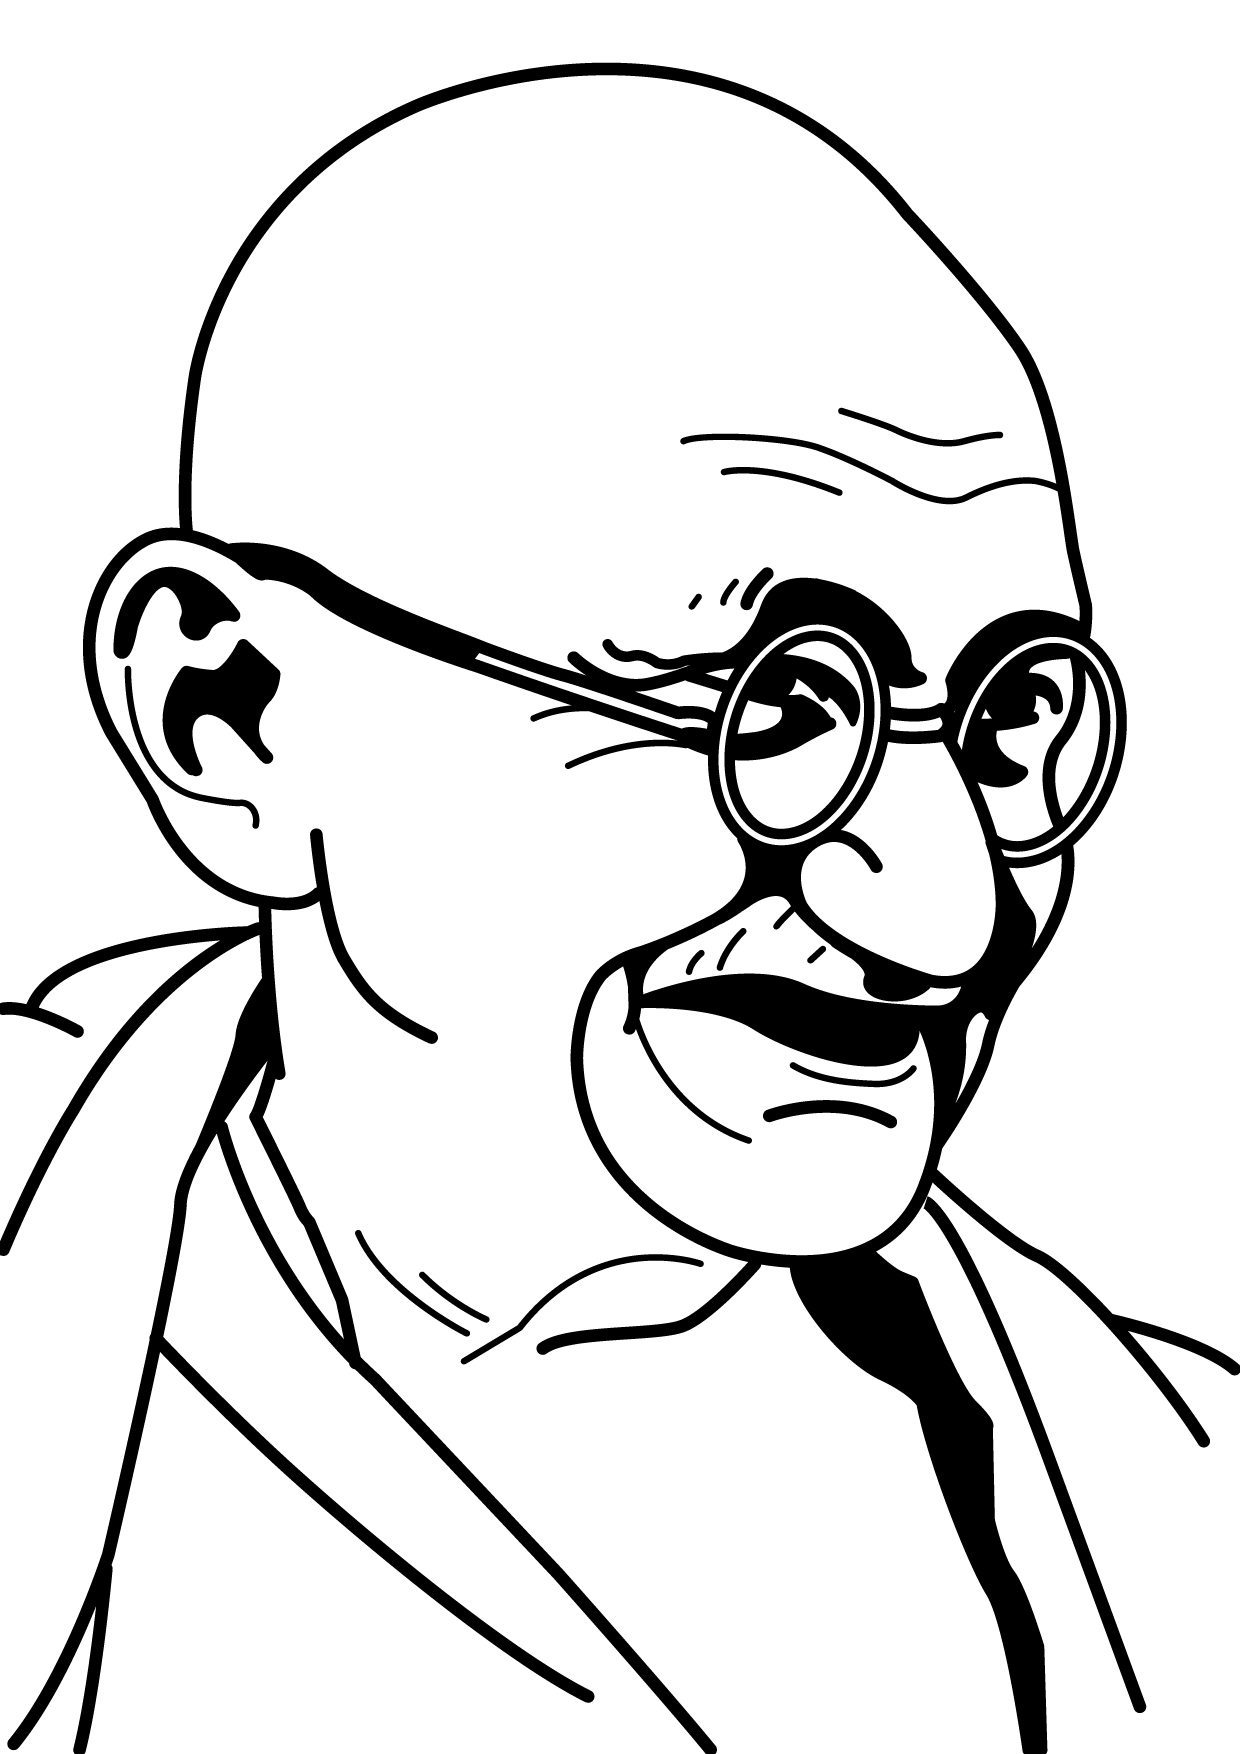 1240x1754 How To Draw Mahatma Gandhi Face Easily Mahatma Gandhi Coloring